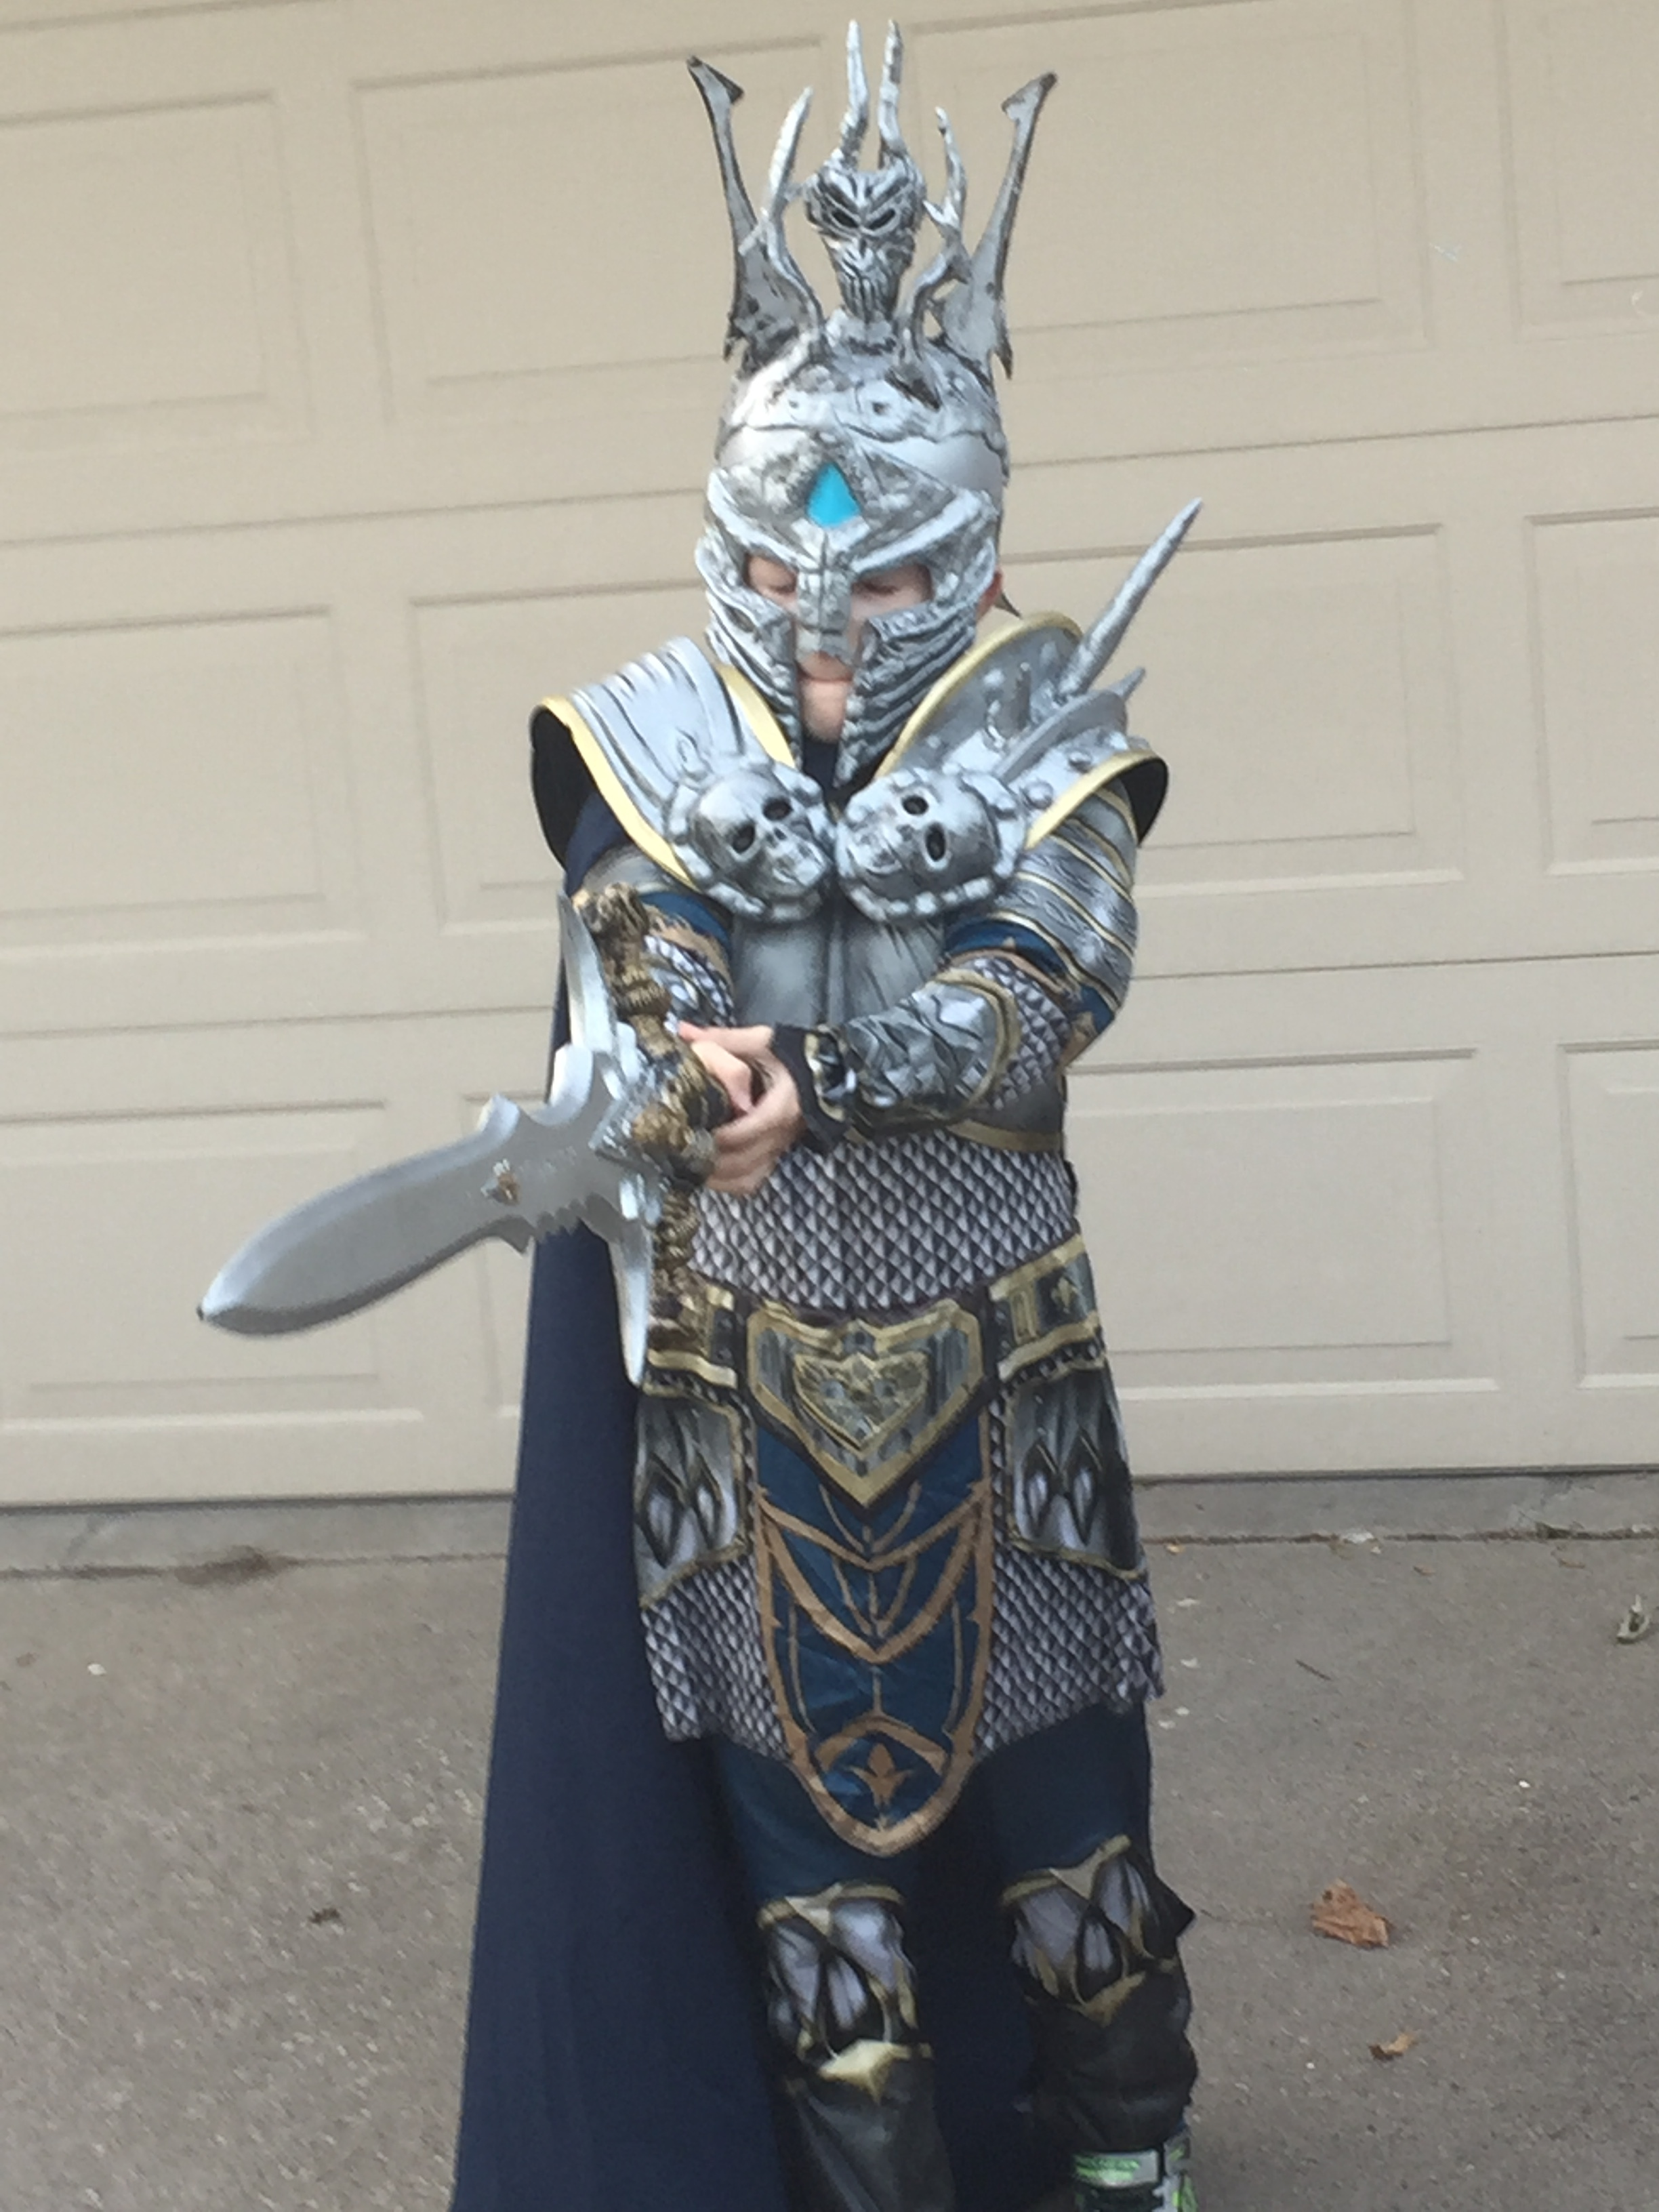 So I feel like sharing because my kid had an awesome costume. I also want my wife to appreciate that people loved it. So my son went as Arthas the Lich King ... & Halloween Costume fun - itmeJP General - itmeJP Community